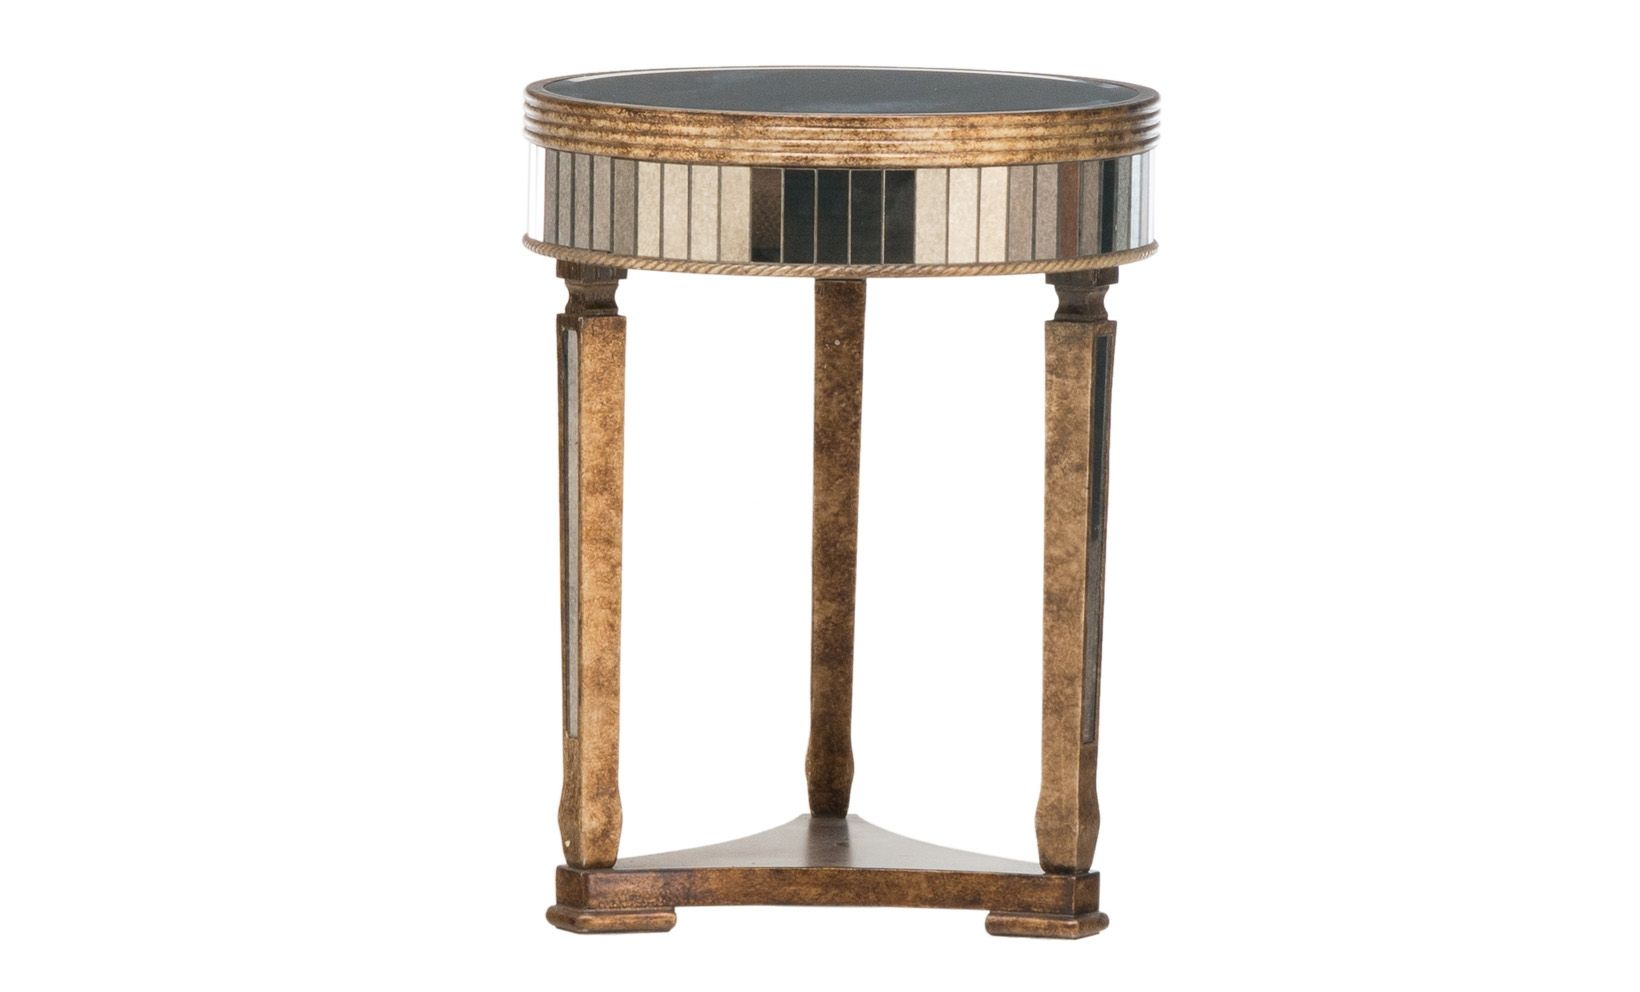 mottled mirror accent table small space ideas mirrored high end tables beautiful piece with ornate detailing that will give your living room exquisite look cabinet furniture round